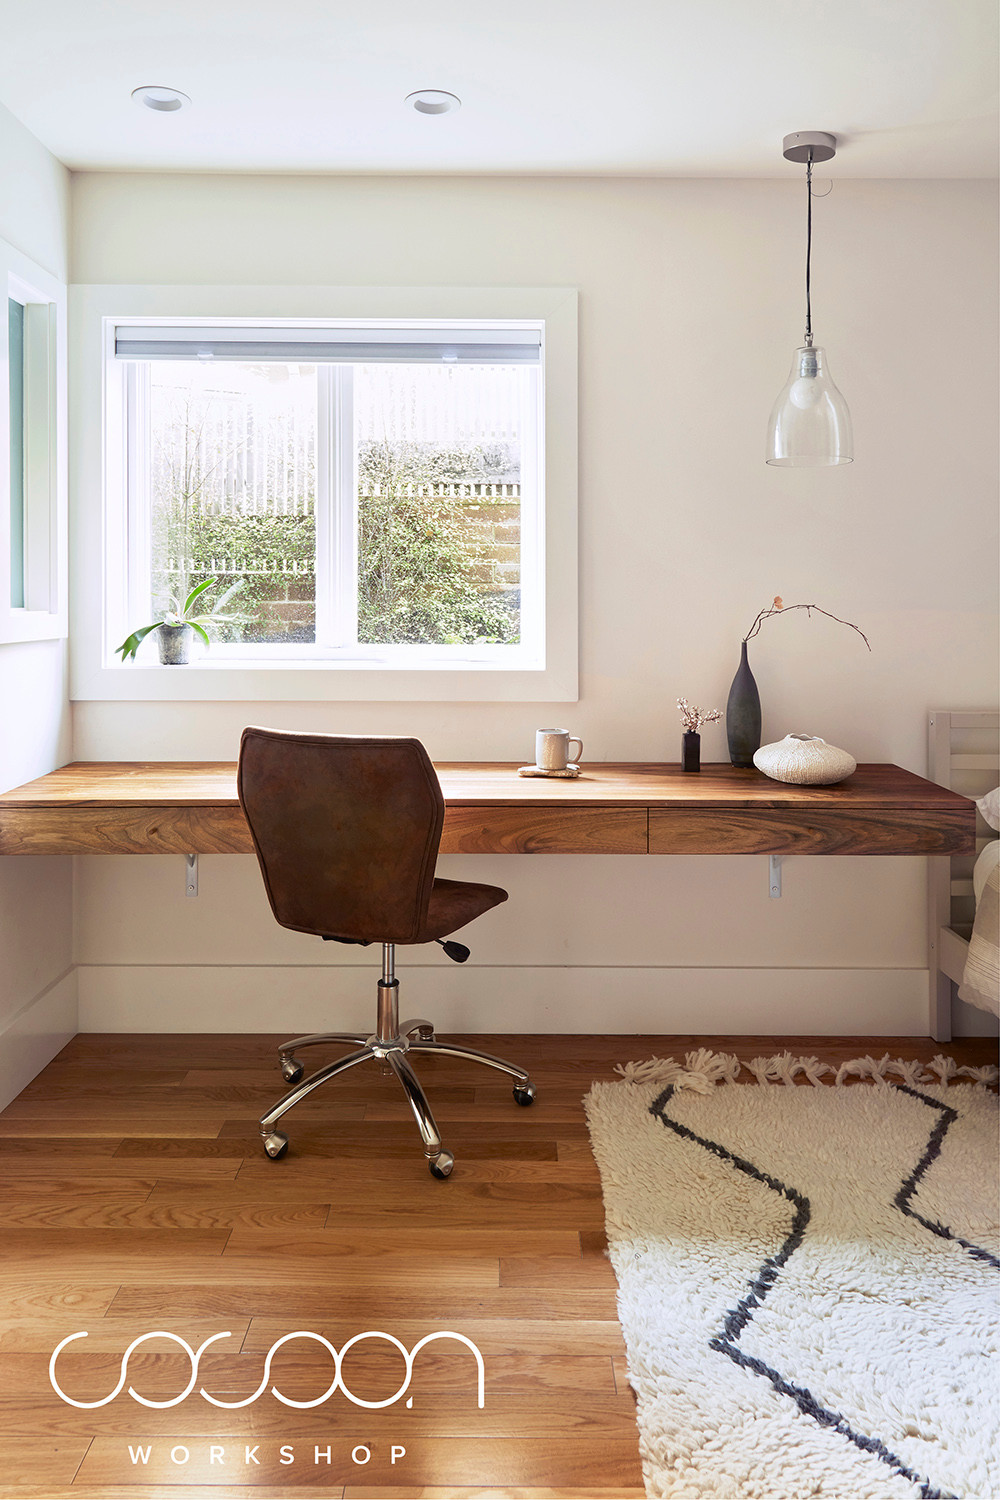 wall-mounted desk as a workspace